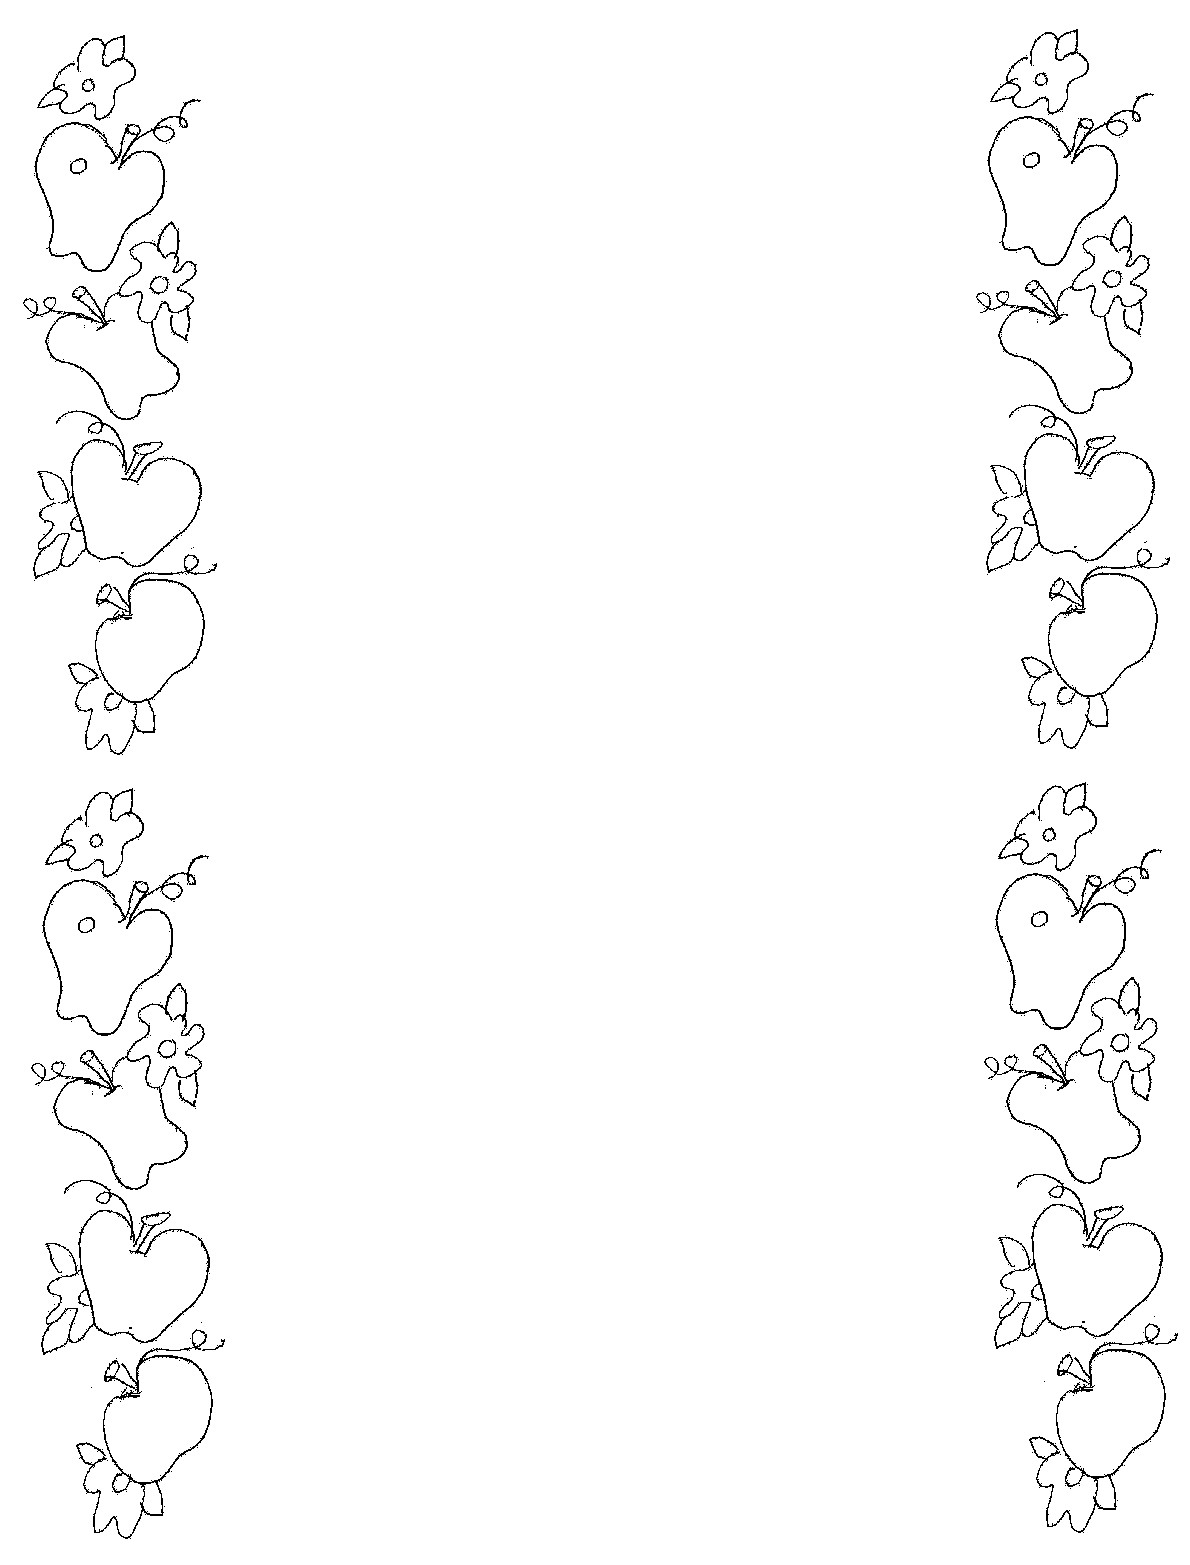 Growgear Blog Archive Page Border Clip Art